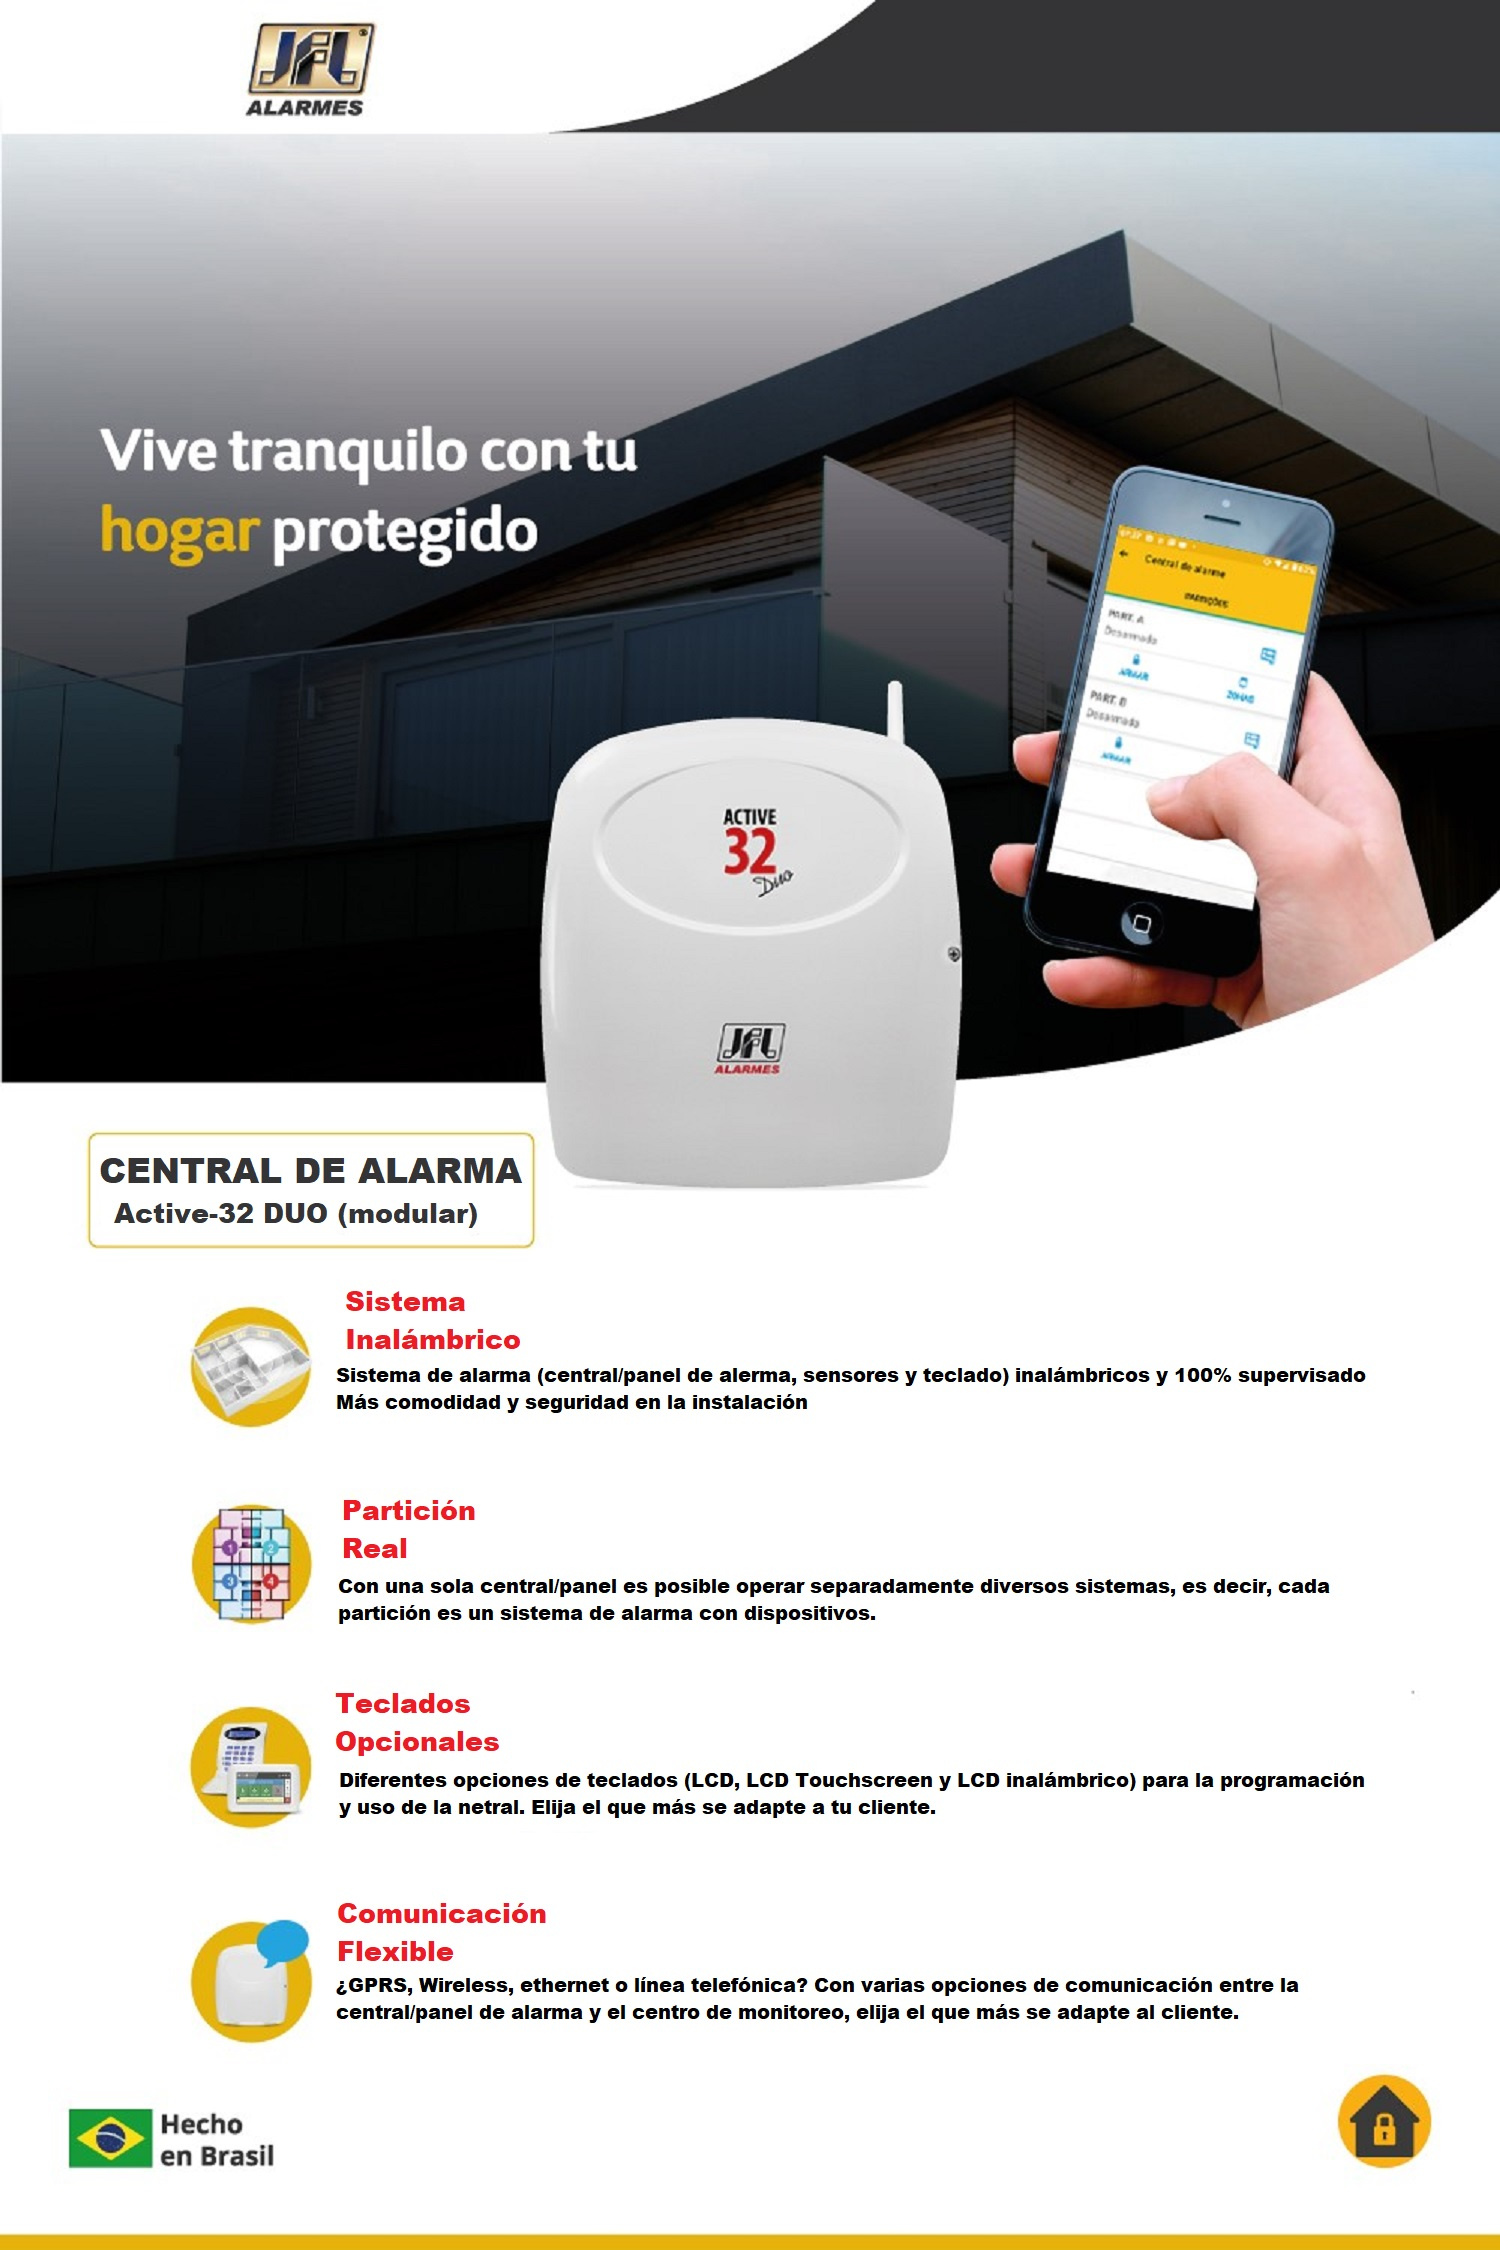 https://0201.nccdn.net/1_2/000/000/0cc/46e/CENTRAL-DE-ALARMA-ACTIVE_32-DUO-MODULAR-1500x2250.jpg